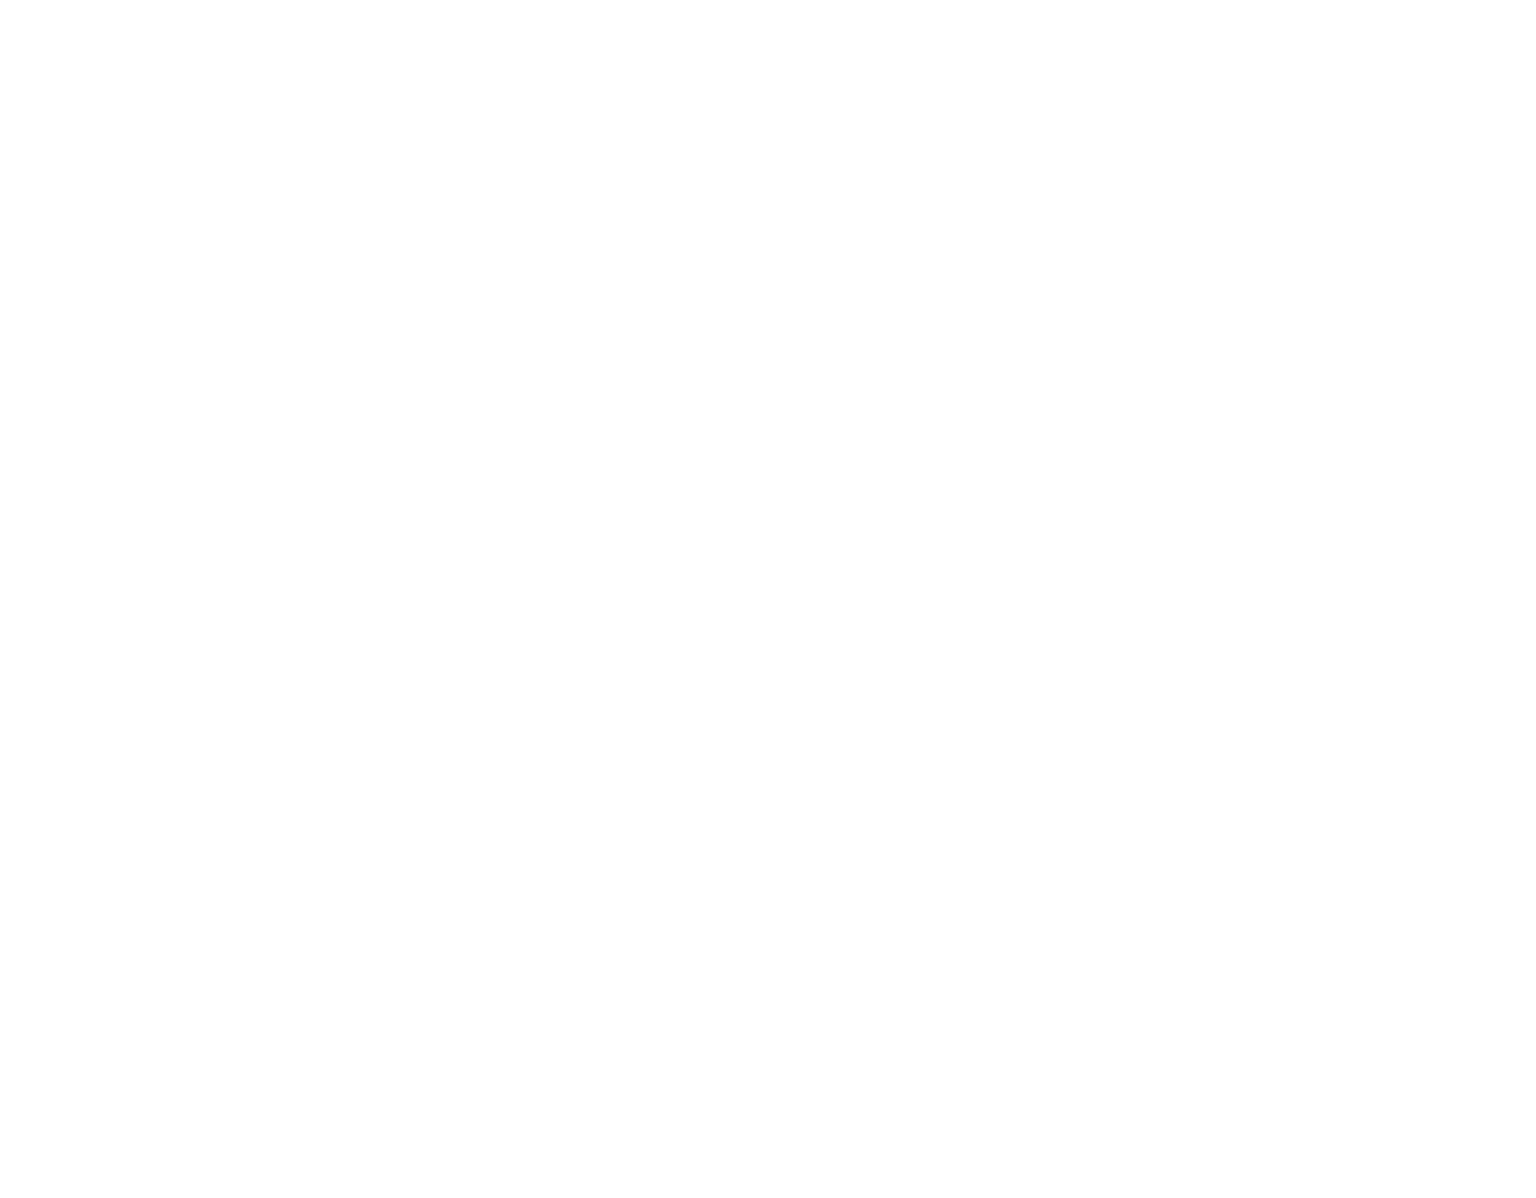 Dierks Bentley The Mountain Enhanced Album Experience